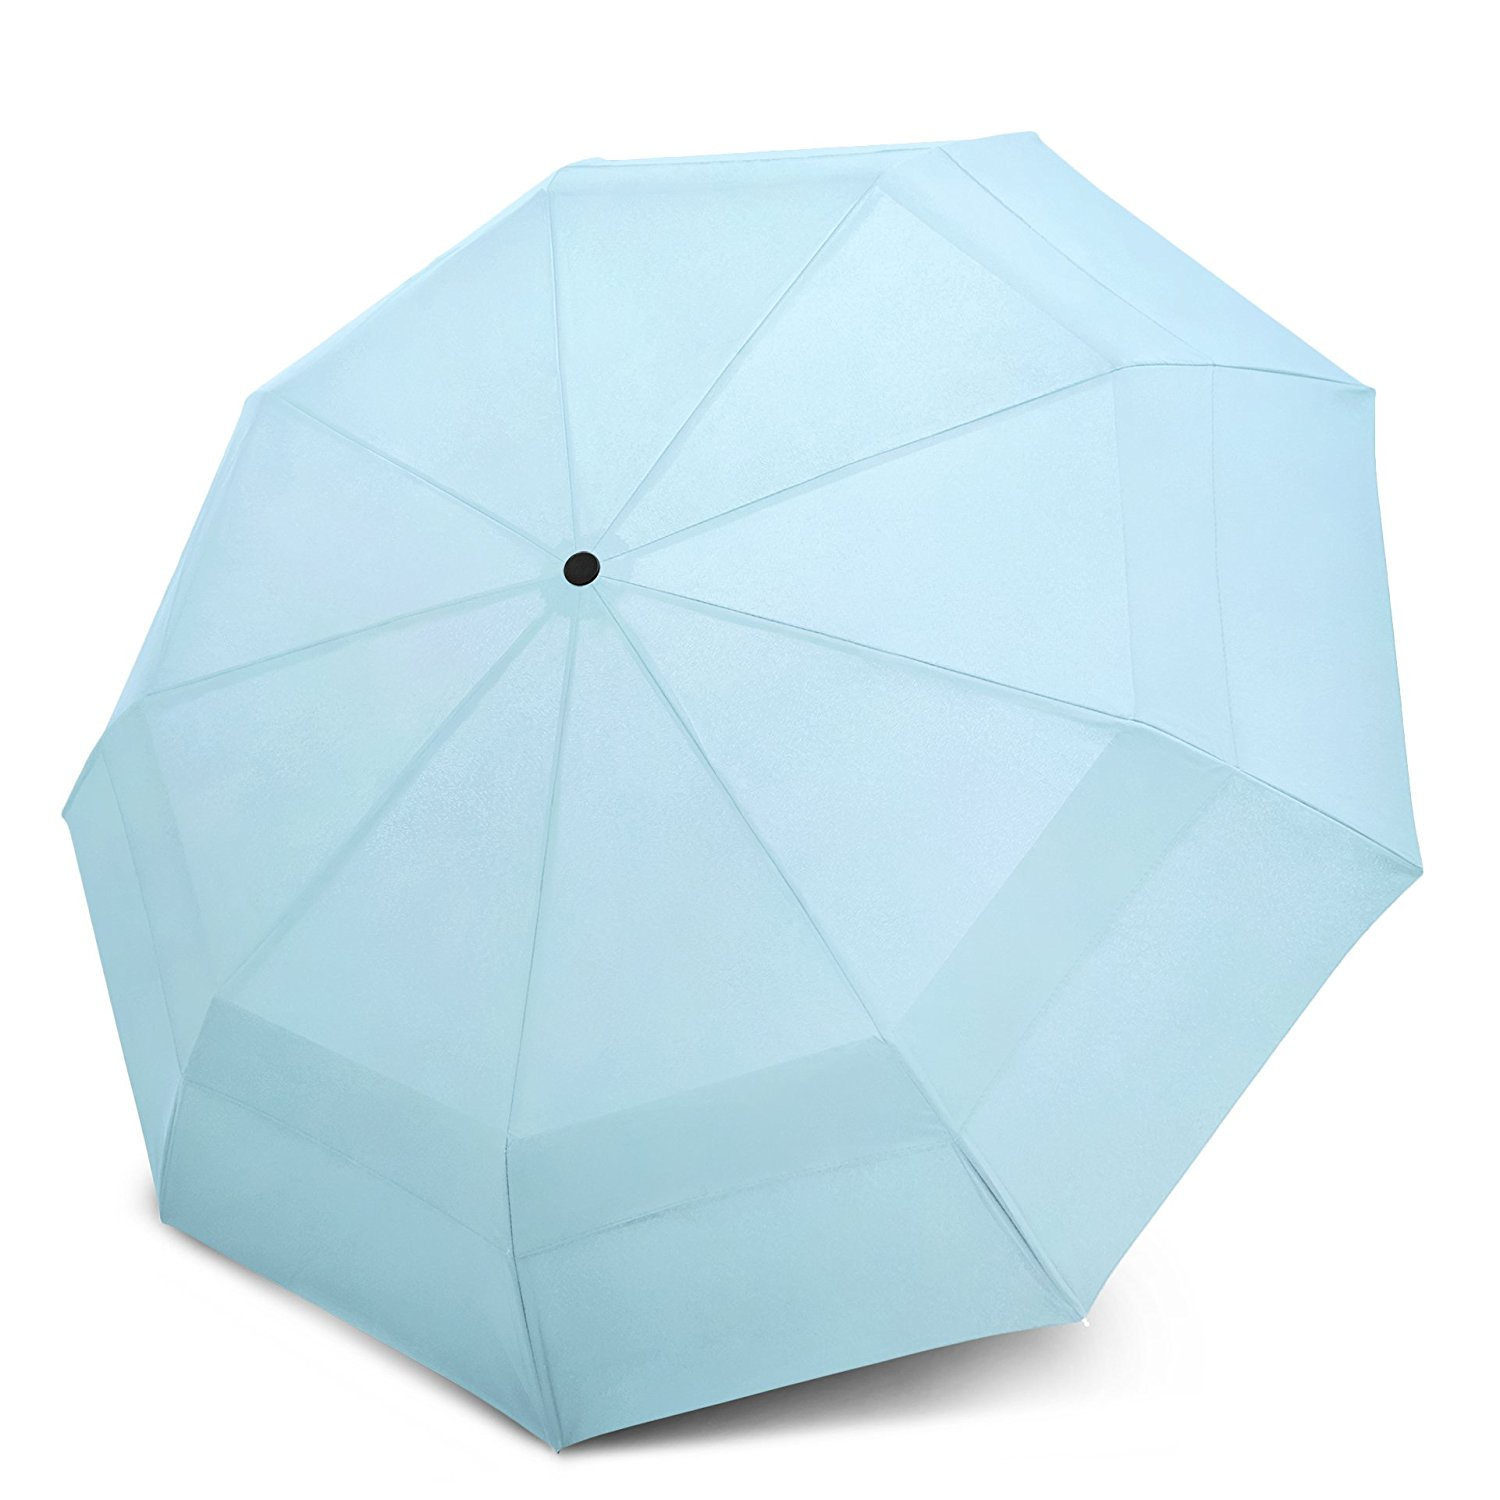 Review of the Best Travel Umbrella—EEZ-Y Compact Travel Umbrella with Windproof Double Canopy Construction and Auto Open Close